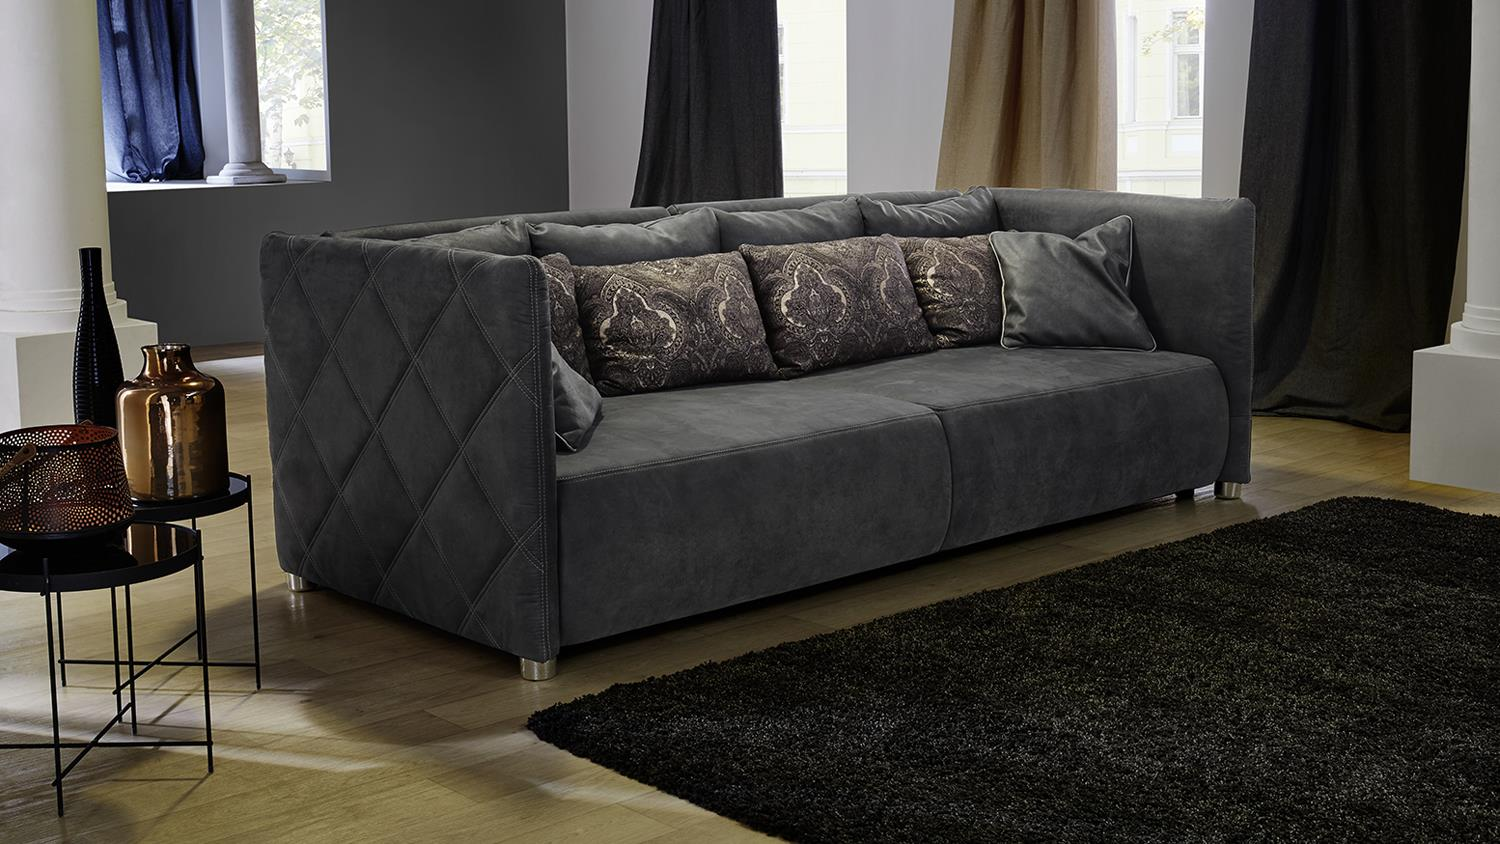 big sofa treviso nubukoptik lederlook grau inklusive kissen. Black Bedroom Furniture Sets. Home Design Ideas